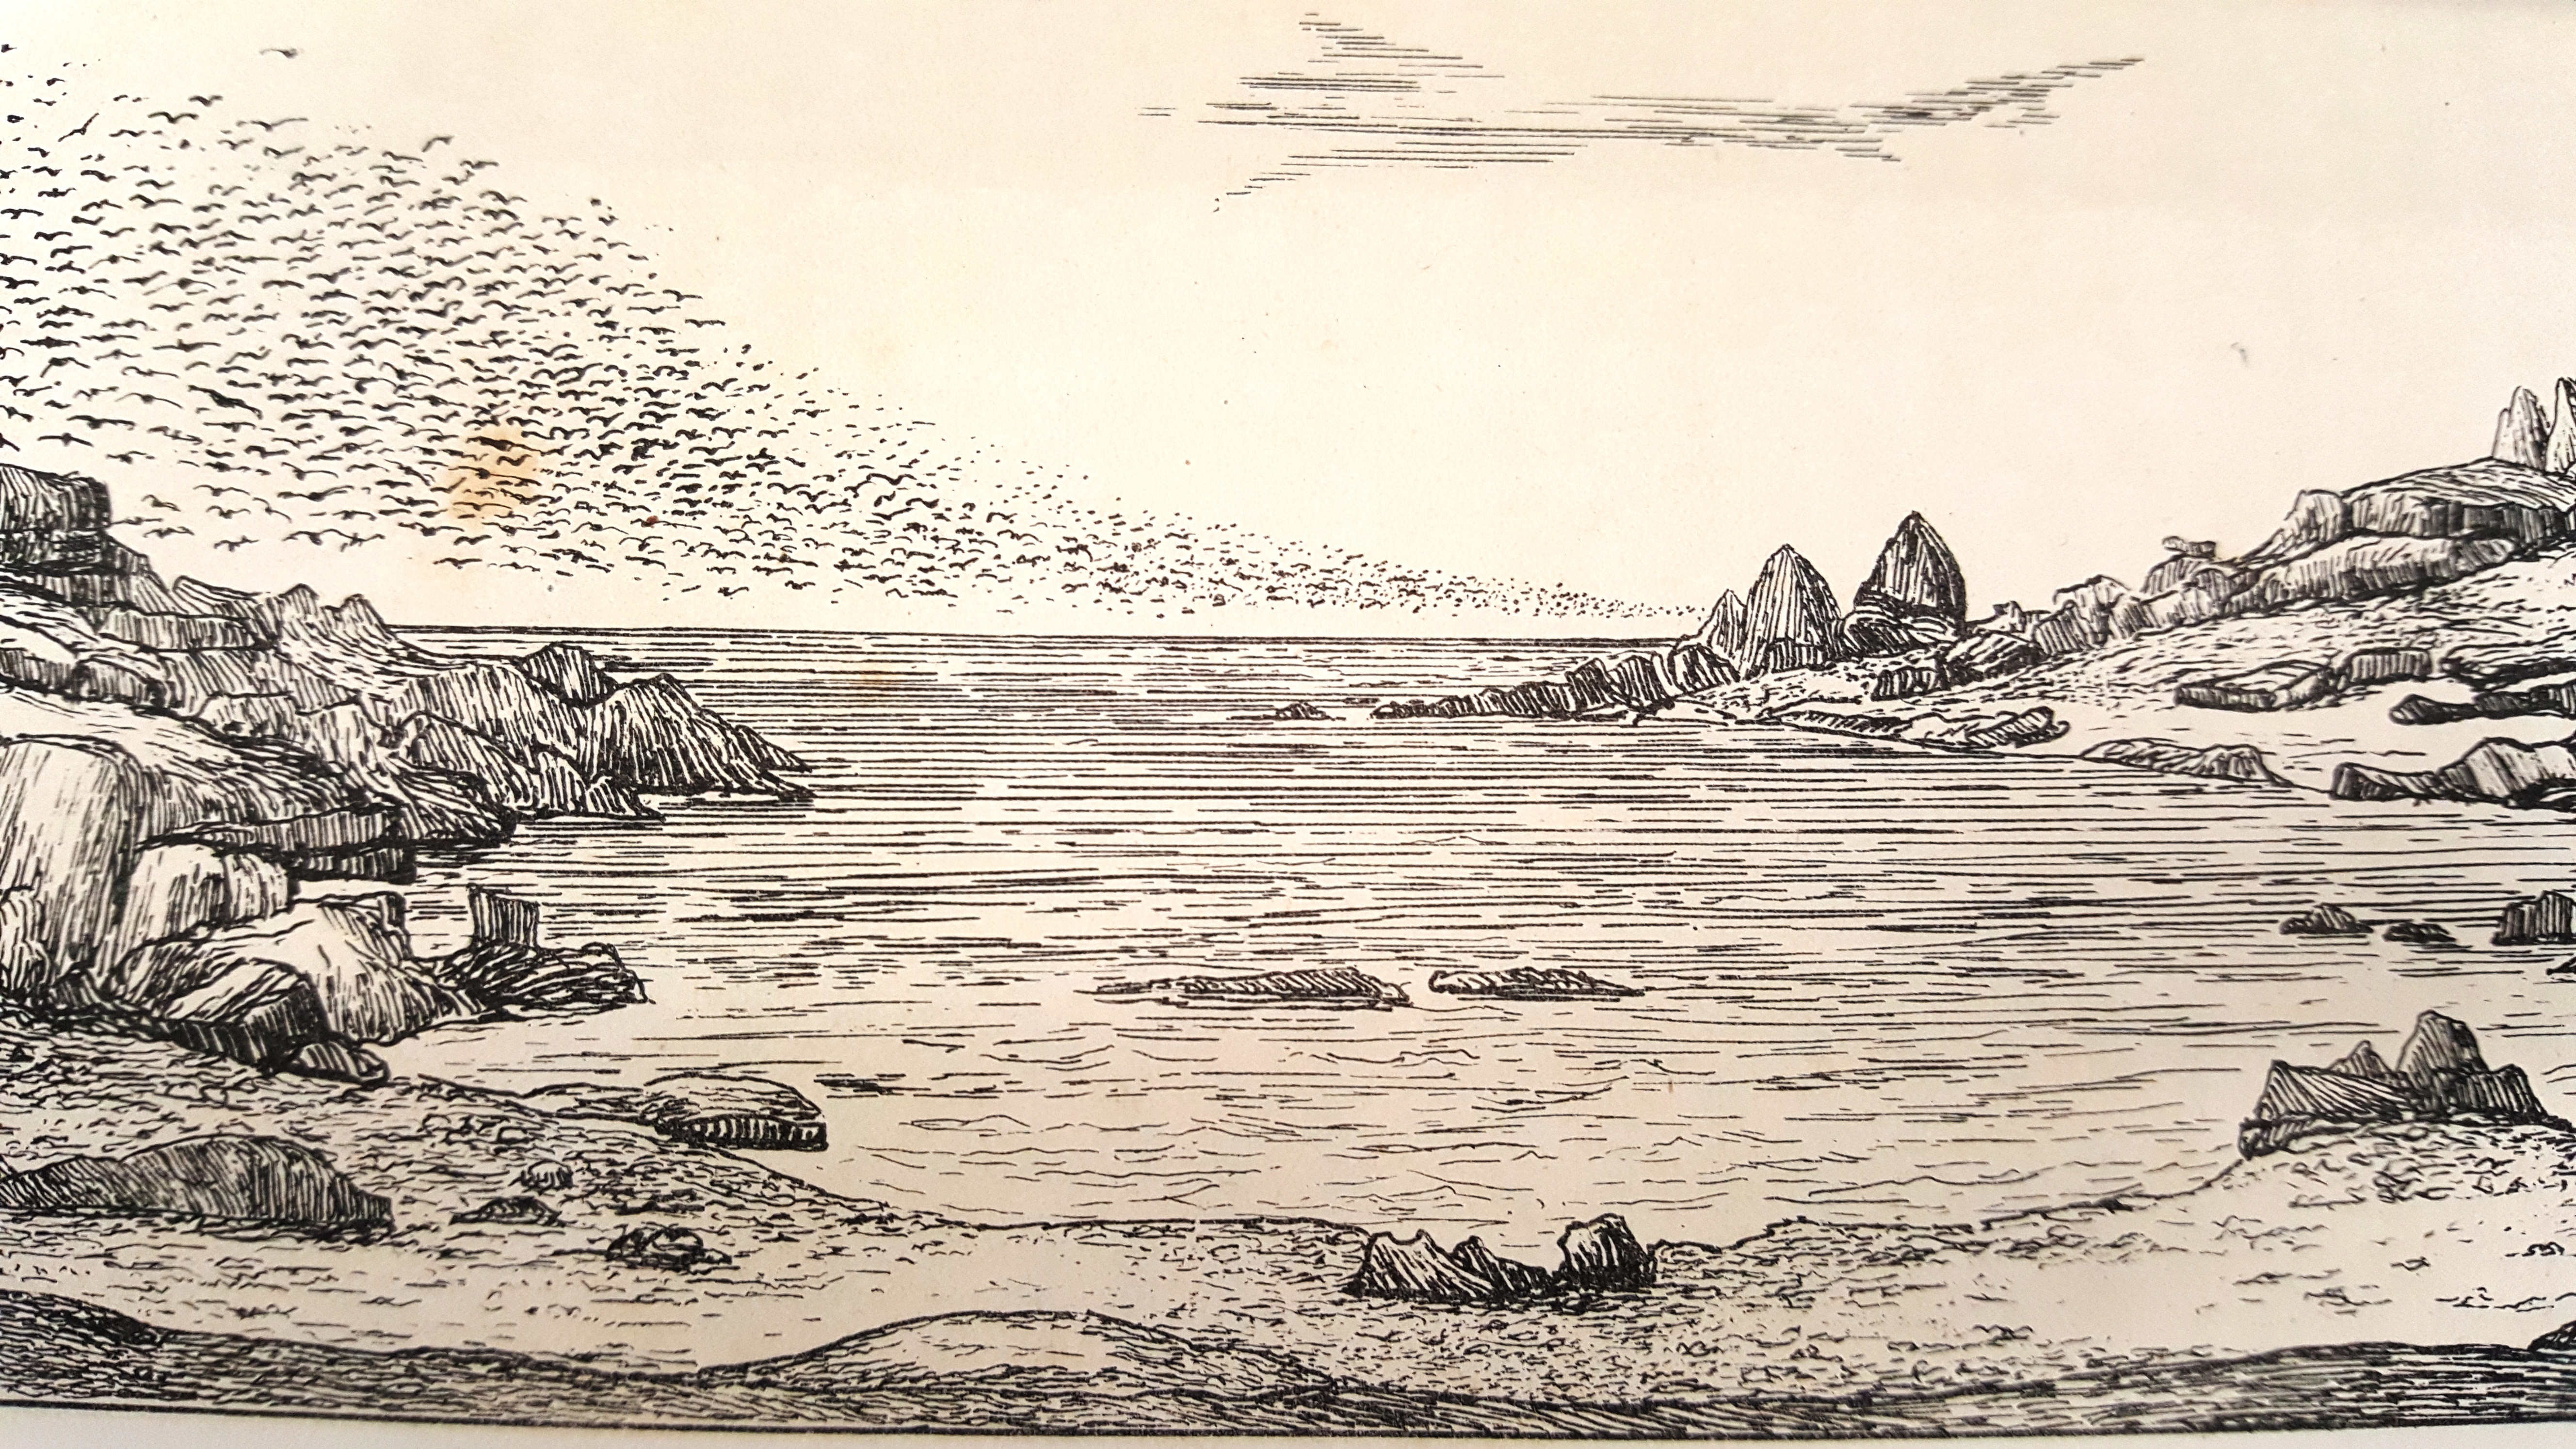 Unicorn Rocks, Badger Island, illustration by Rev. Brownrigg, Cruise of the Freak, 1872 , State Library of New South Wales